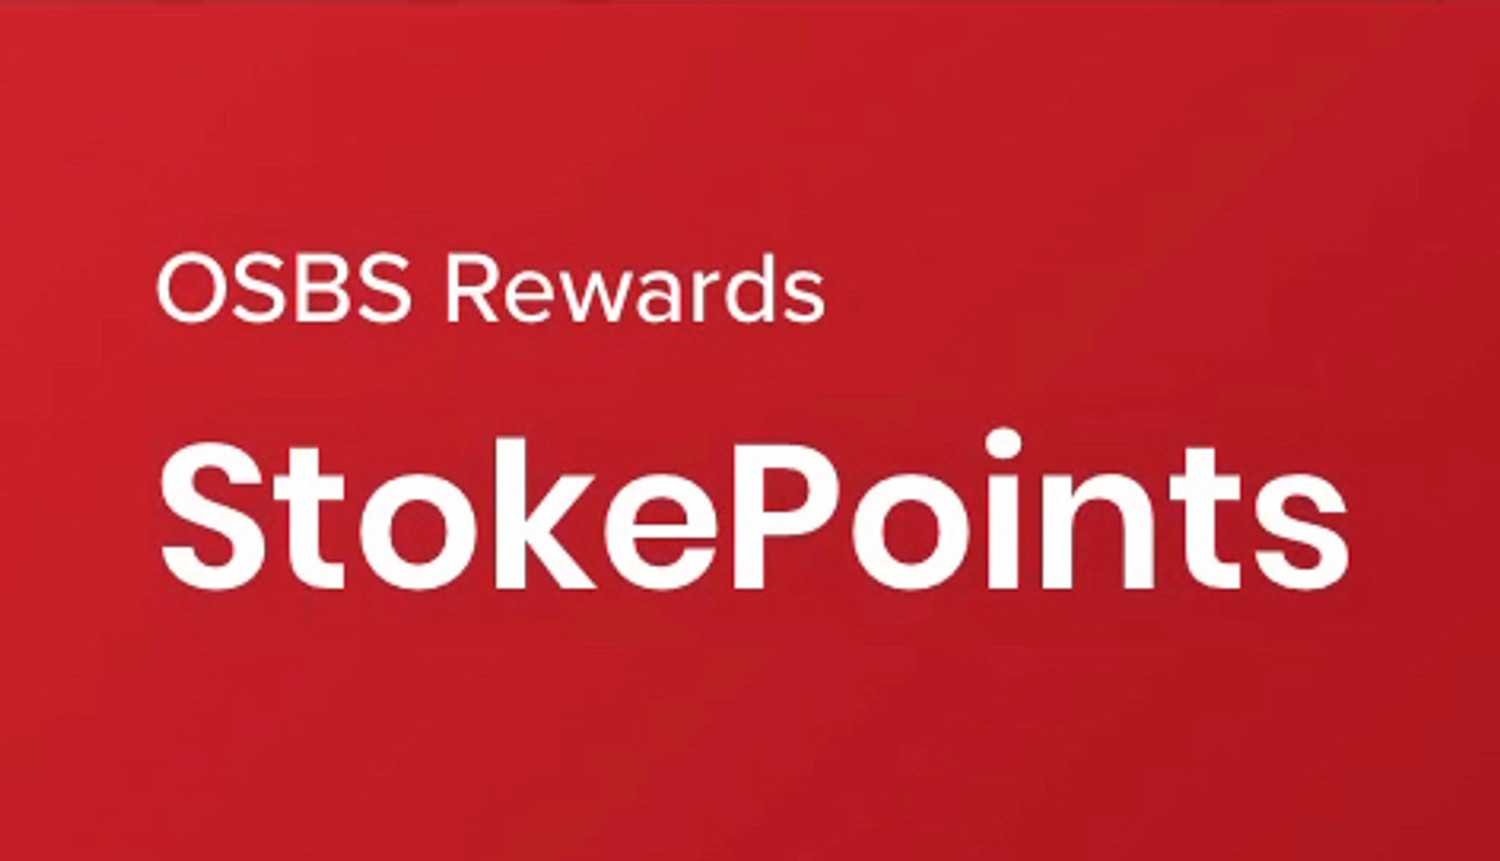 OSBS Rewards - StokePoints